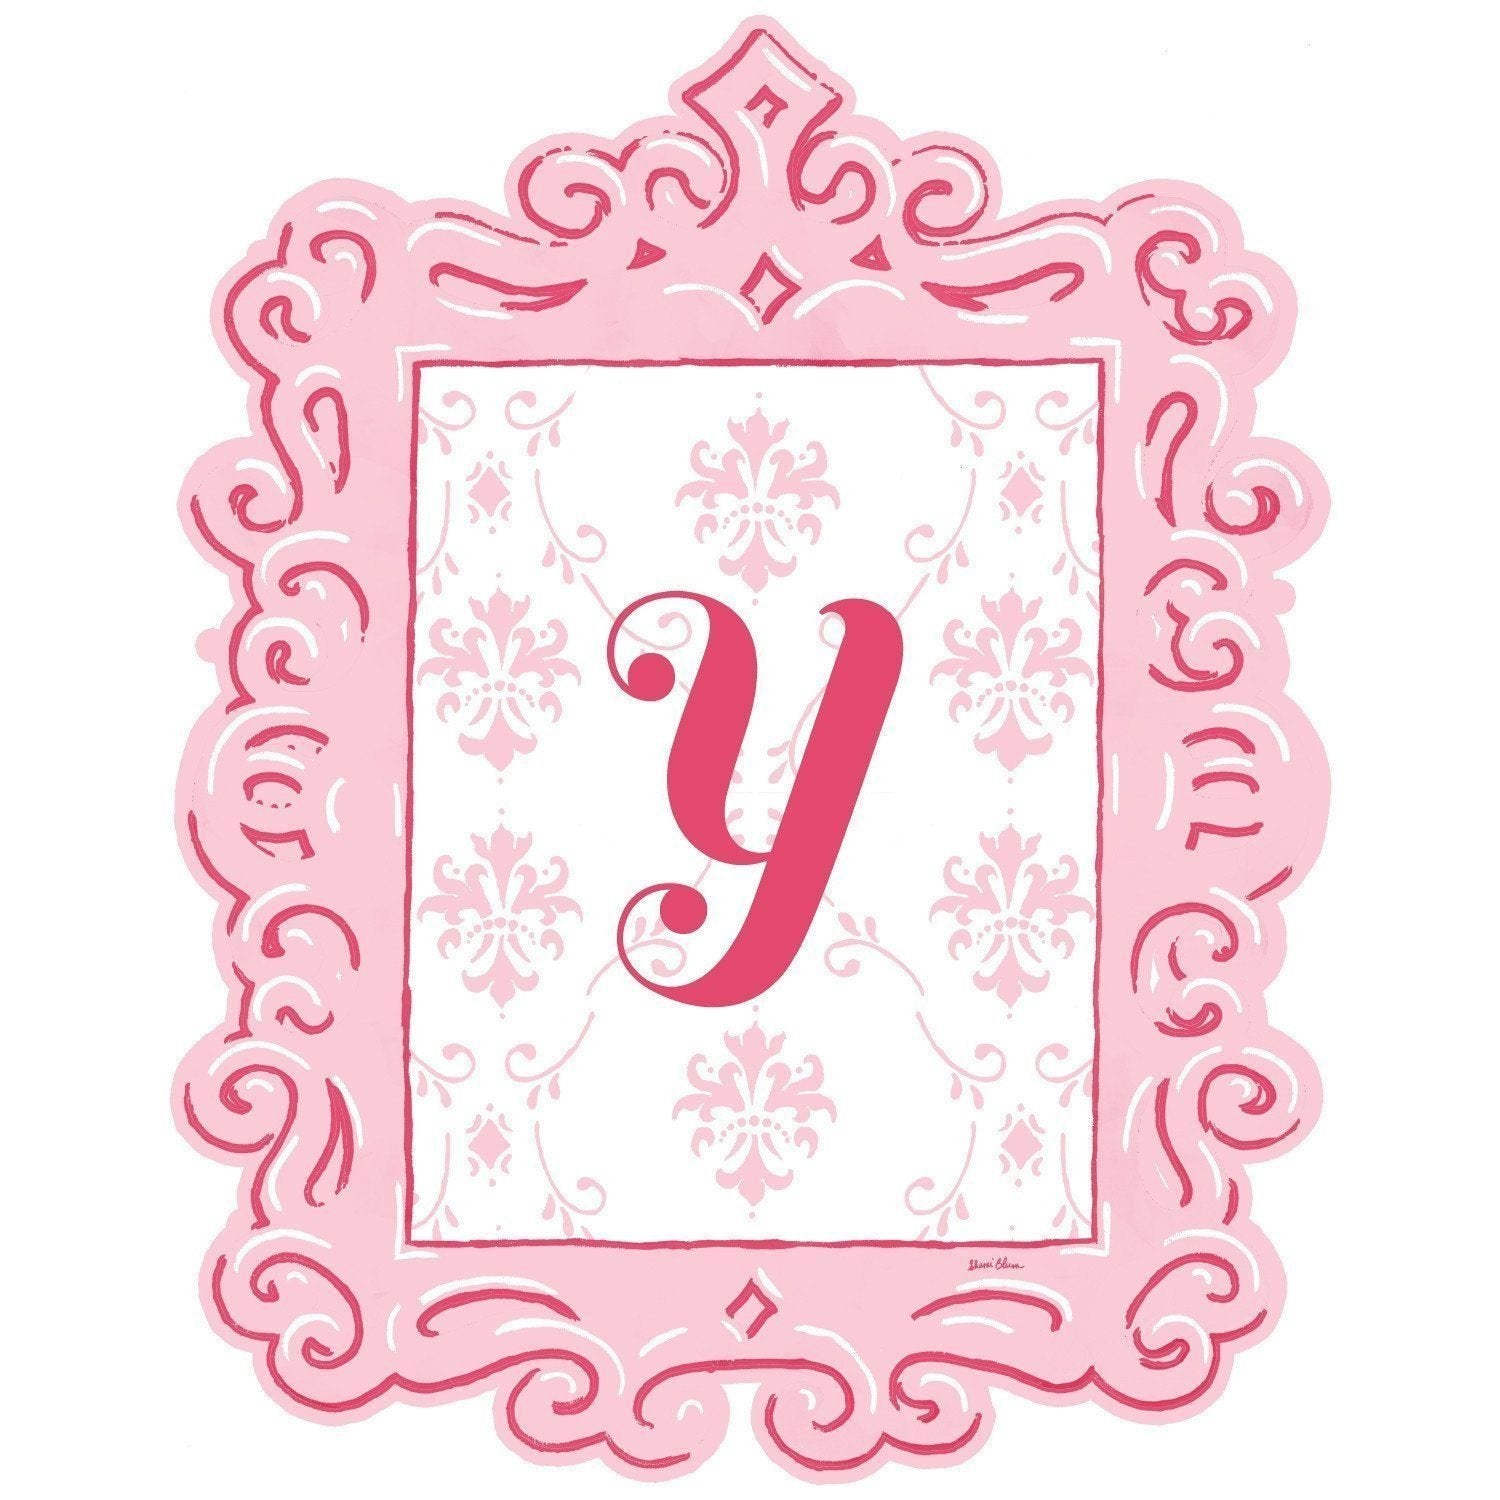 Framed Damask Monogram Wall Decal in Pink-Decals-Default-Jack and Jill Boutique